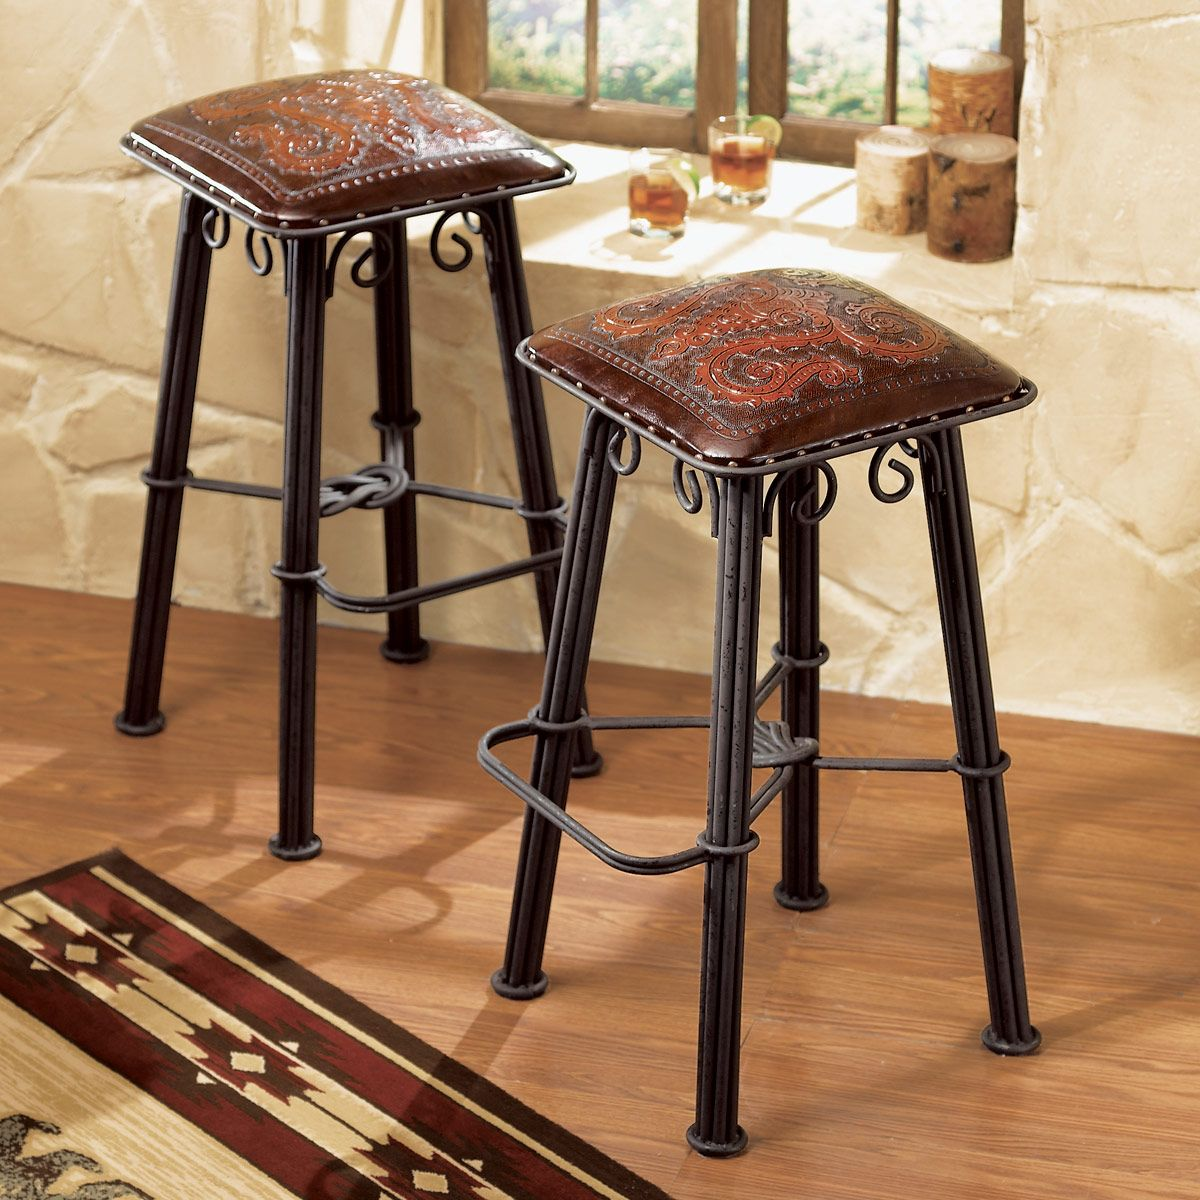 Iron Counter Stool Tooled Leather Seat - Antique Brown - OVERSTOCK